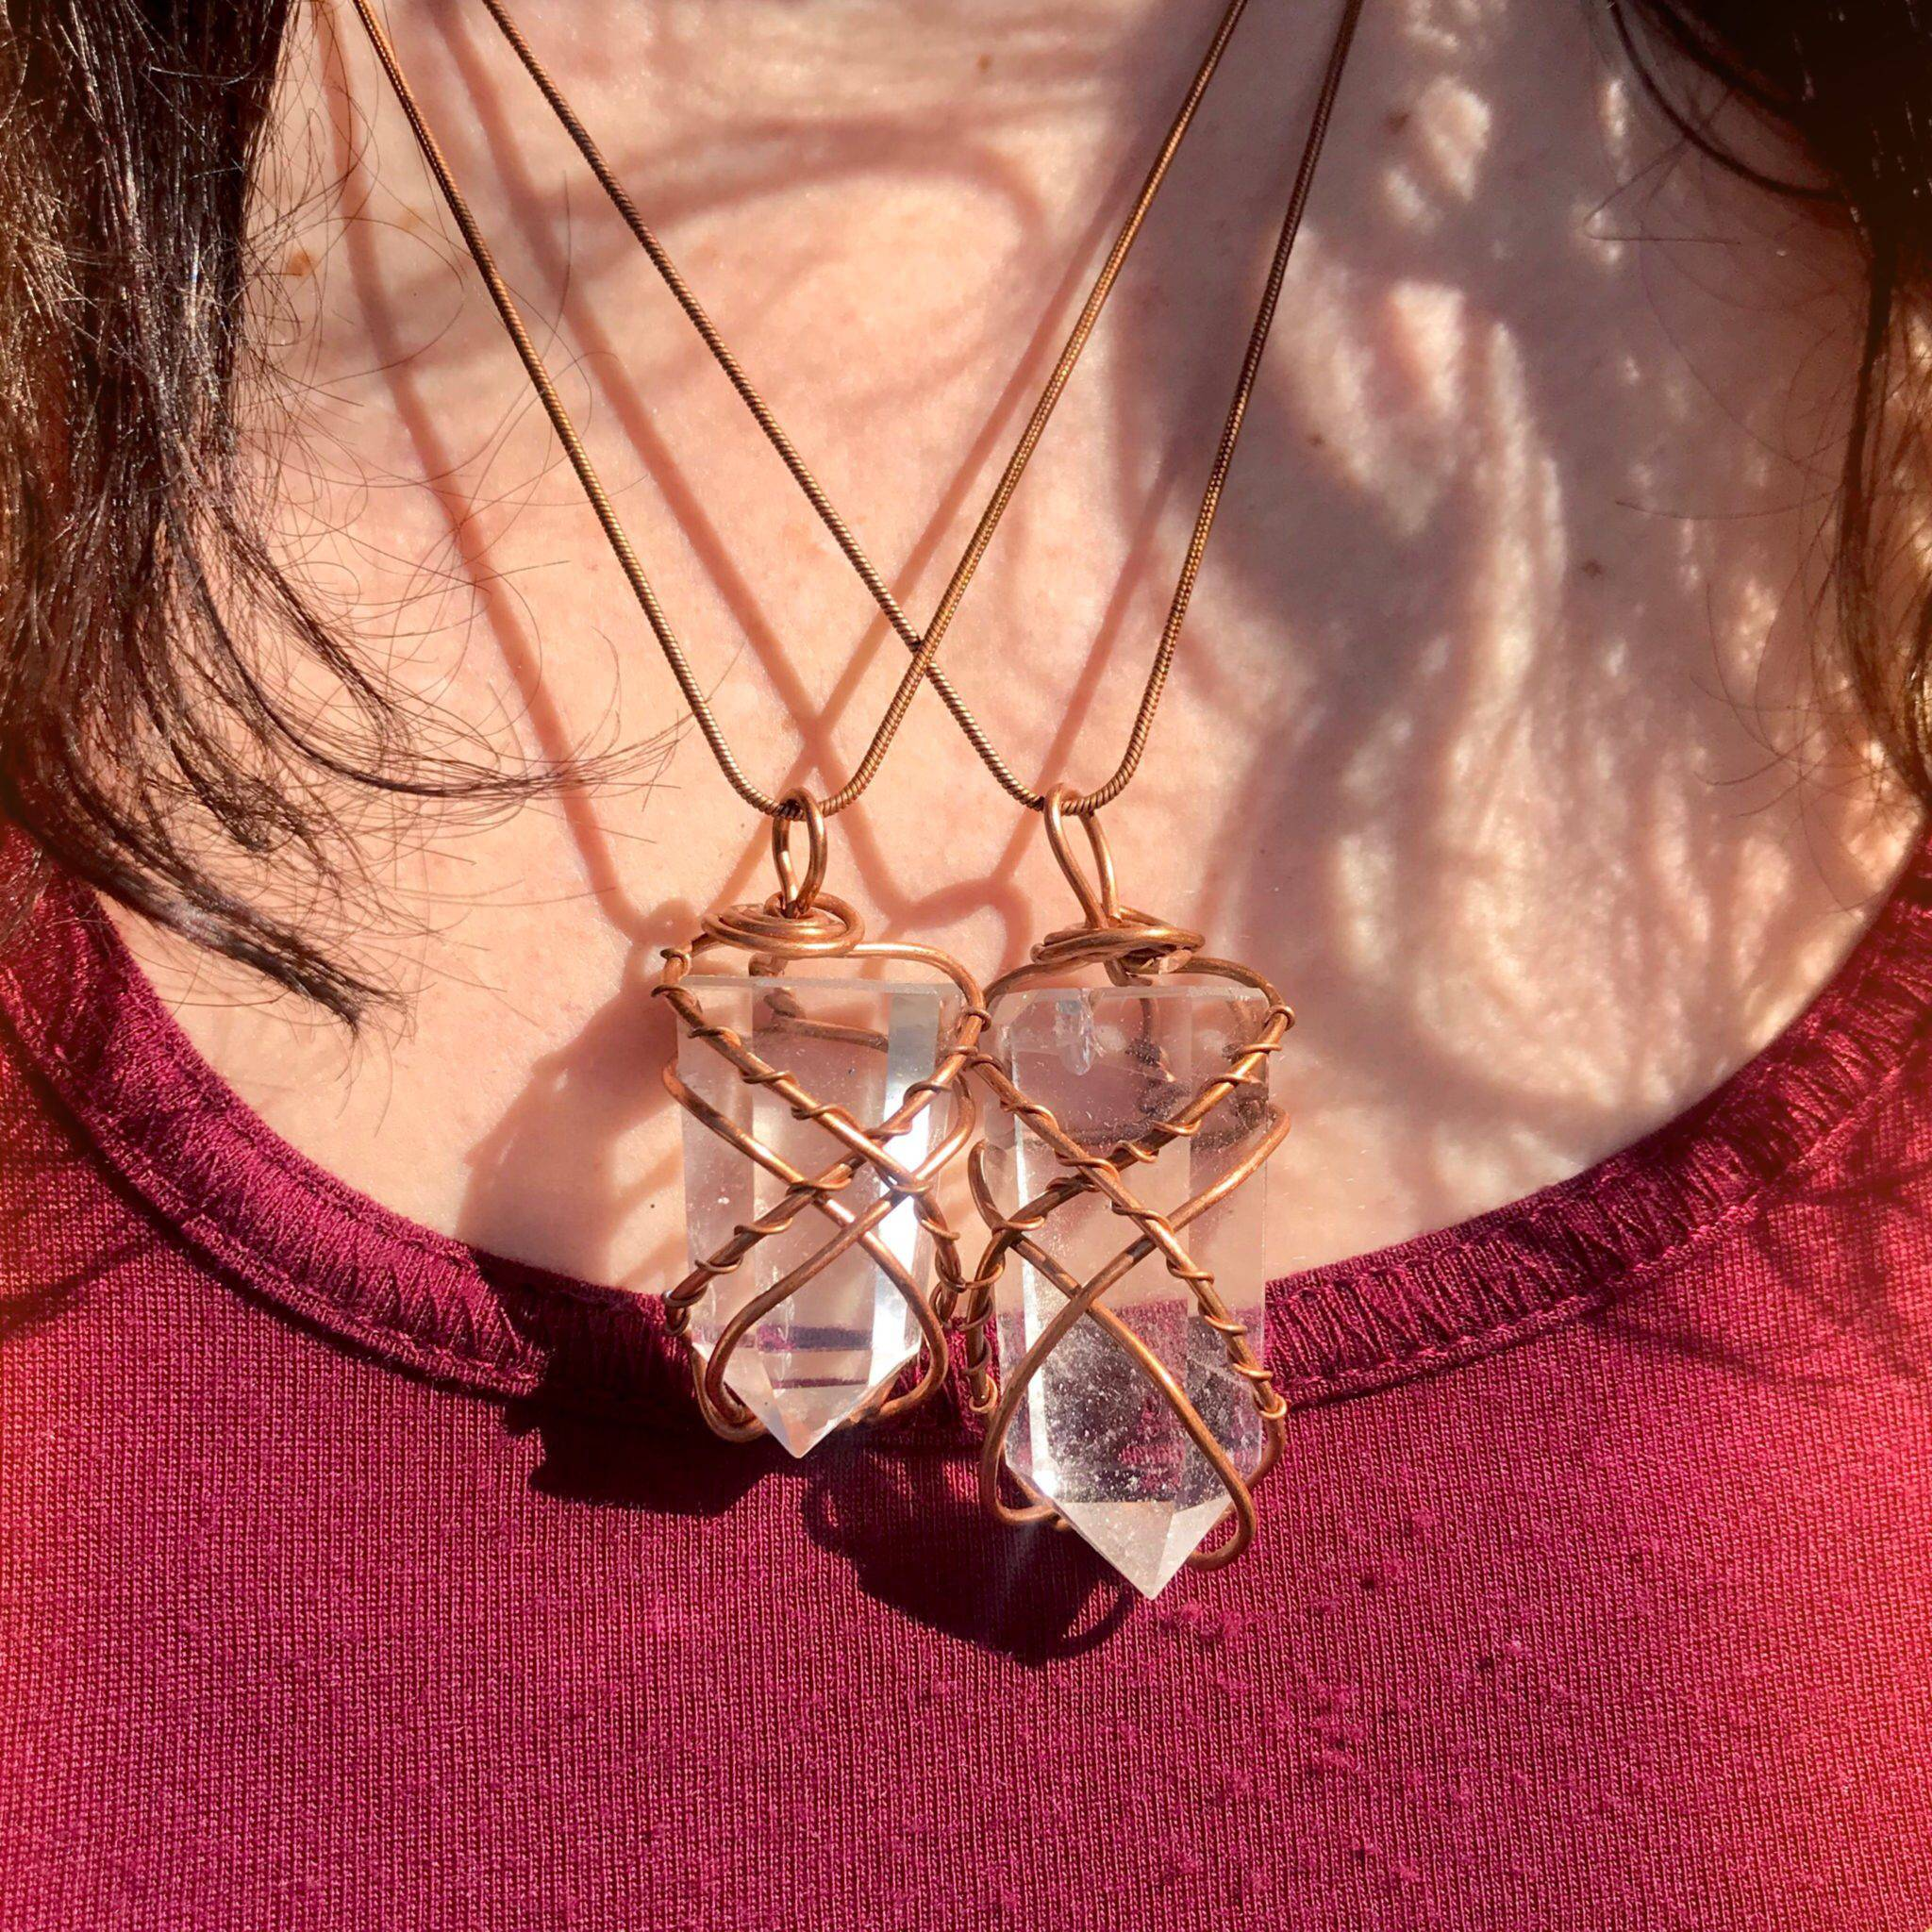 Real Copper wire wrapped quartz crystal point healing pendant